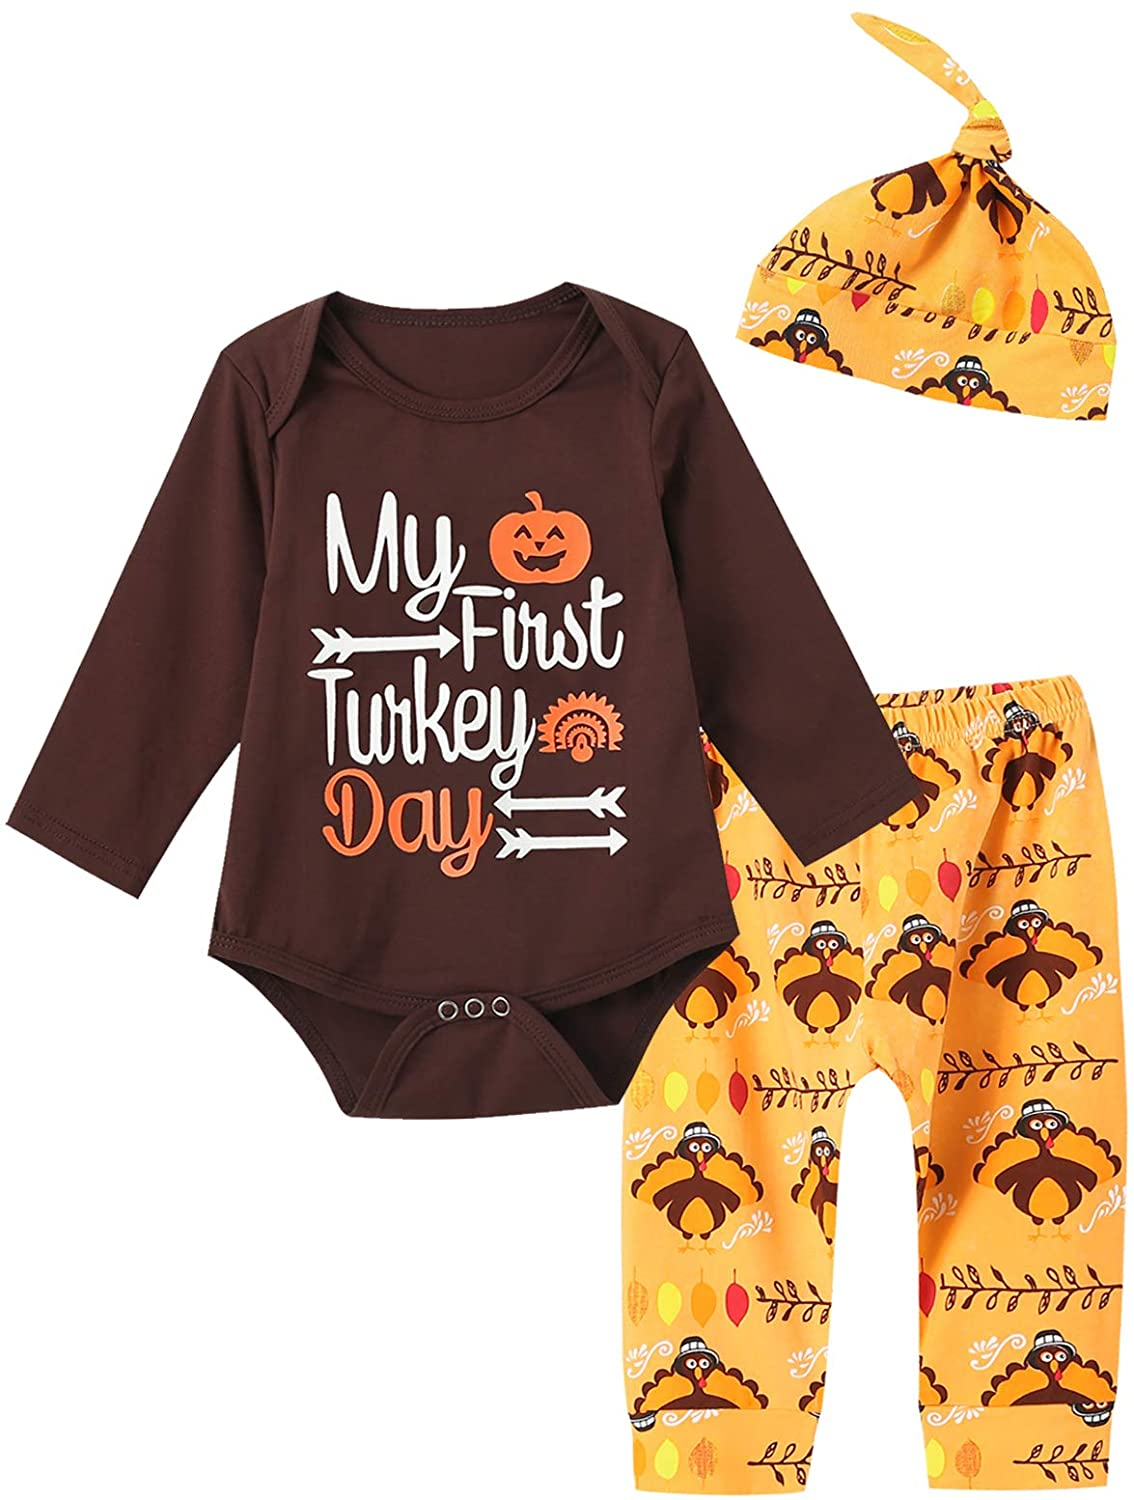 MoryGooder Newborn Baby Boy Girl Thanksgiving Outfit First Turkey Day Romper Pant Clothing Sets